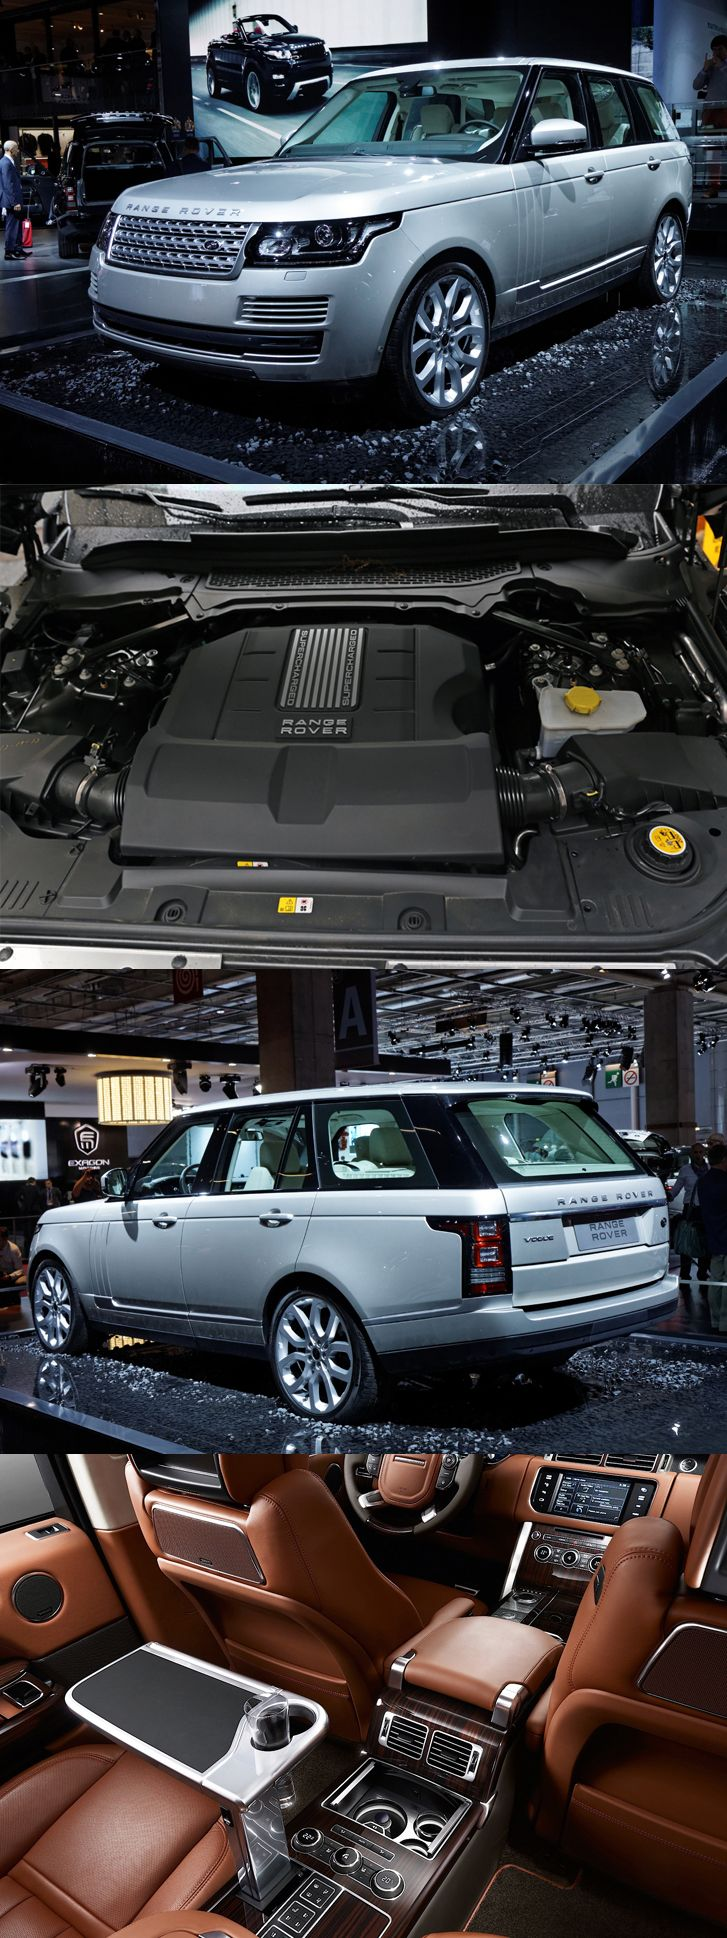 LAND ROVER RANGE ROVER L GETS TERRAIN RESPONSE SYSTEM AND 8-SPEED TRANSMISSION For more detail;https://www.rangerovergearbox.co.uk/blog/land-rover-range-rover-l-gets-terrain-response-system-8-speed-transmission/